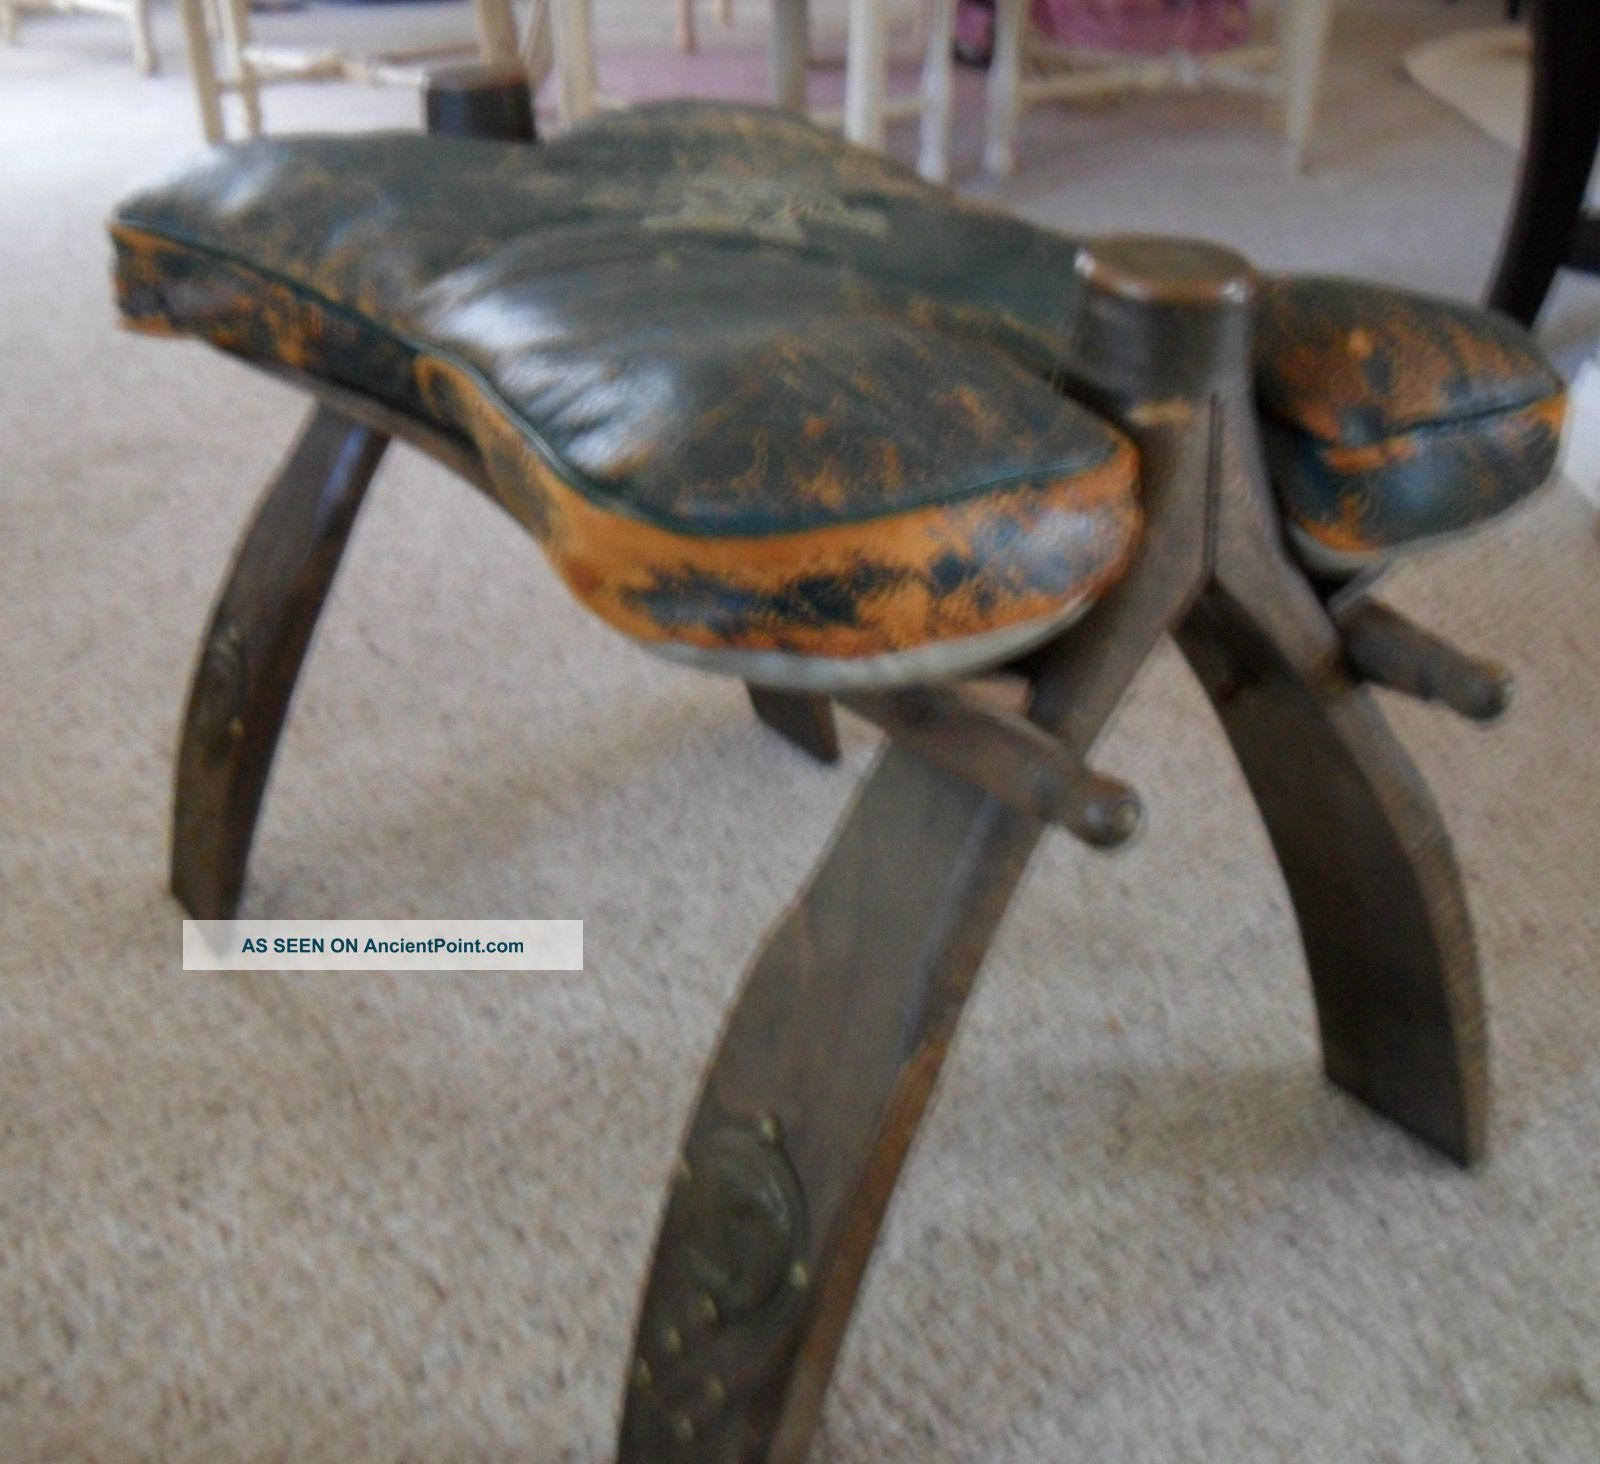 Old Leather Camel Saddle Stool Foot Rest Pharaoh Rustic Furniture Western Worn 1900-1950 photo